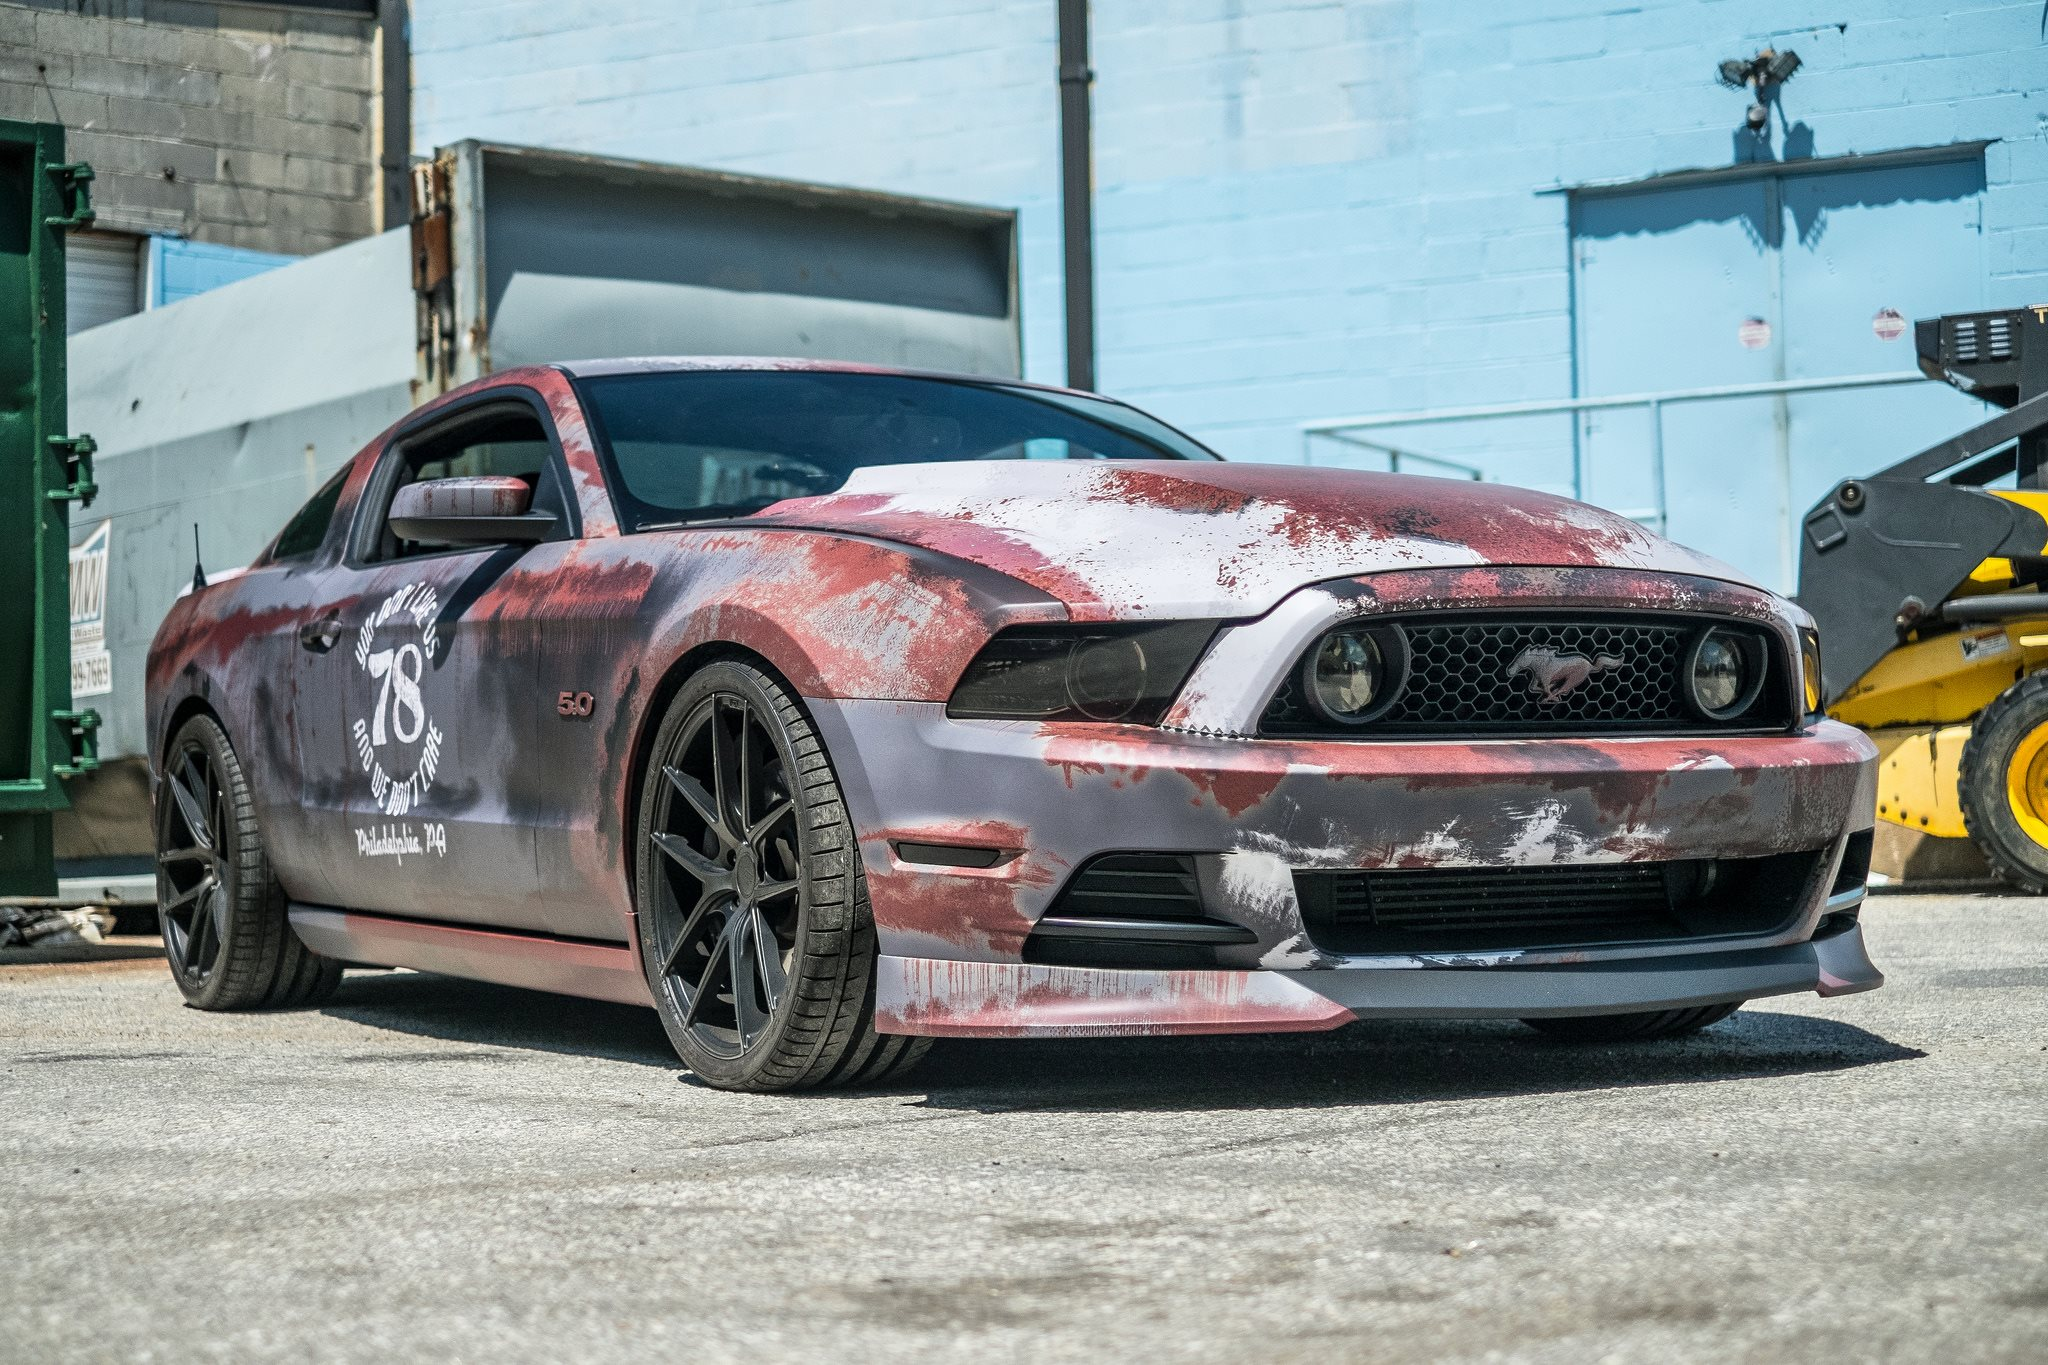 Crazy Rust Wrapped Ford Mustang in Maryland - GTspirit